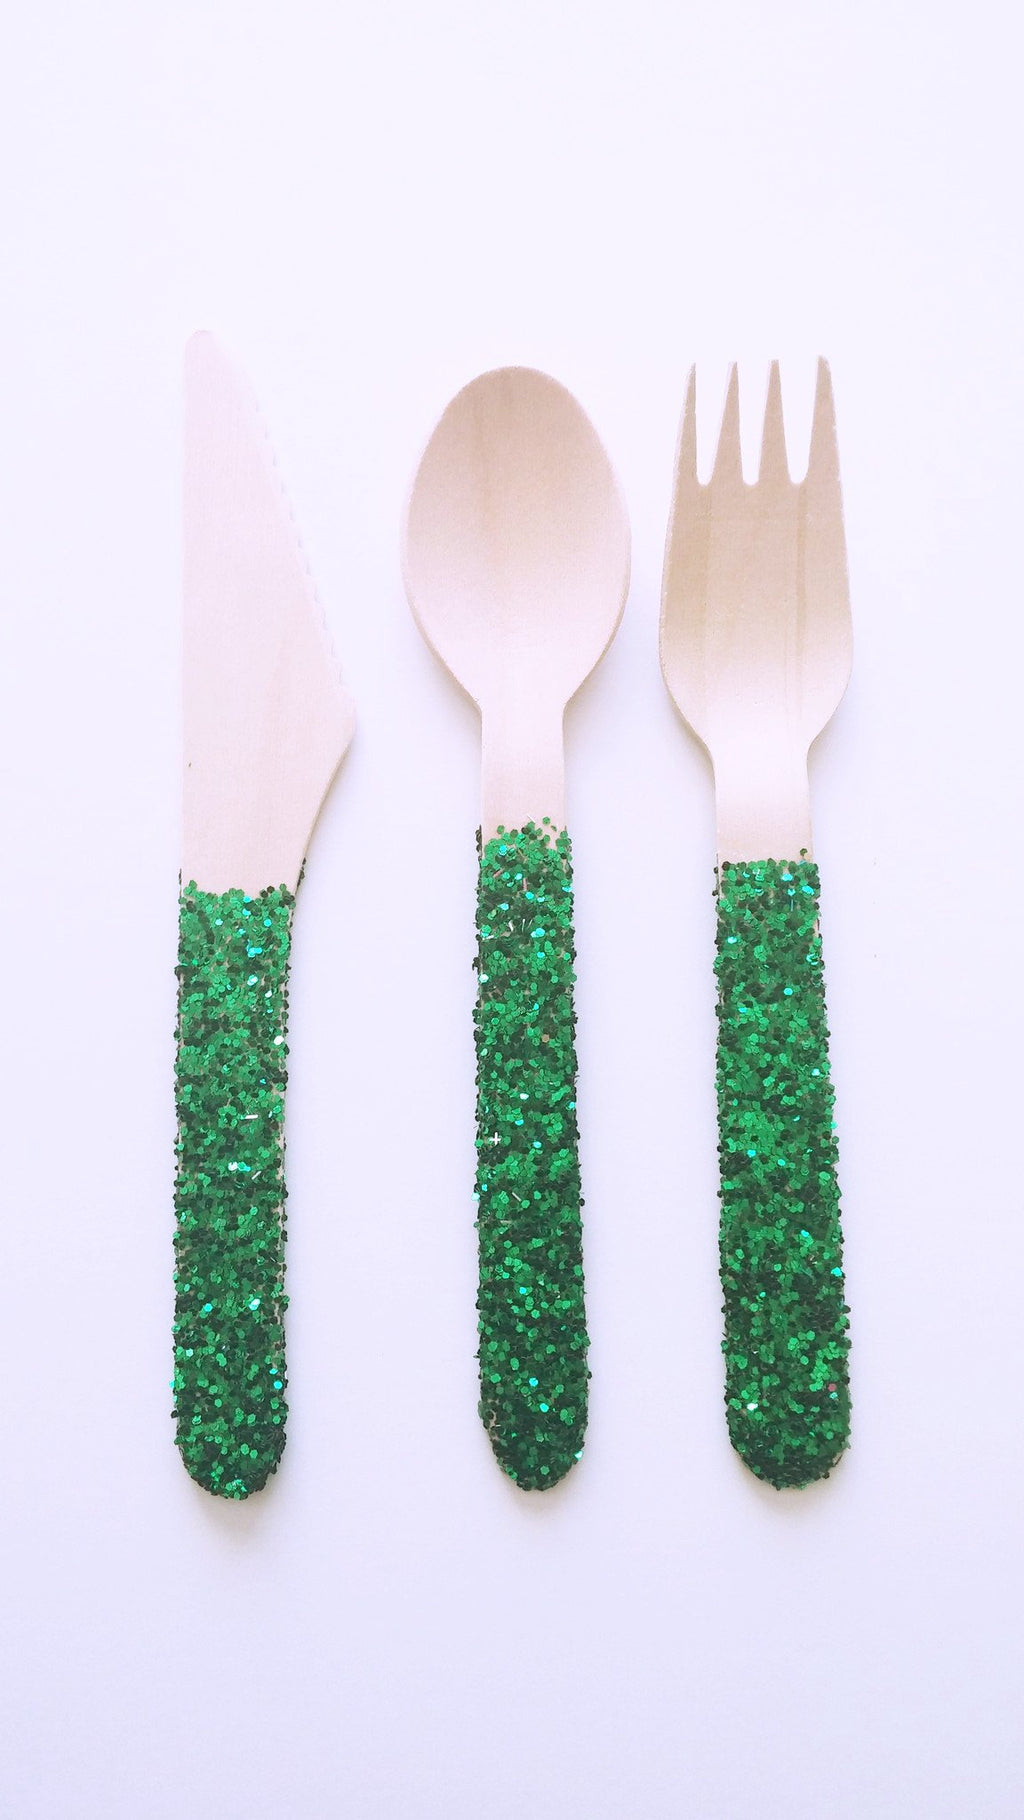 Green glitter wooden forks, spoons and knives for a dinner party